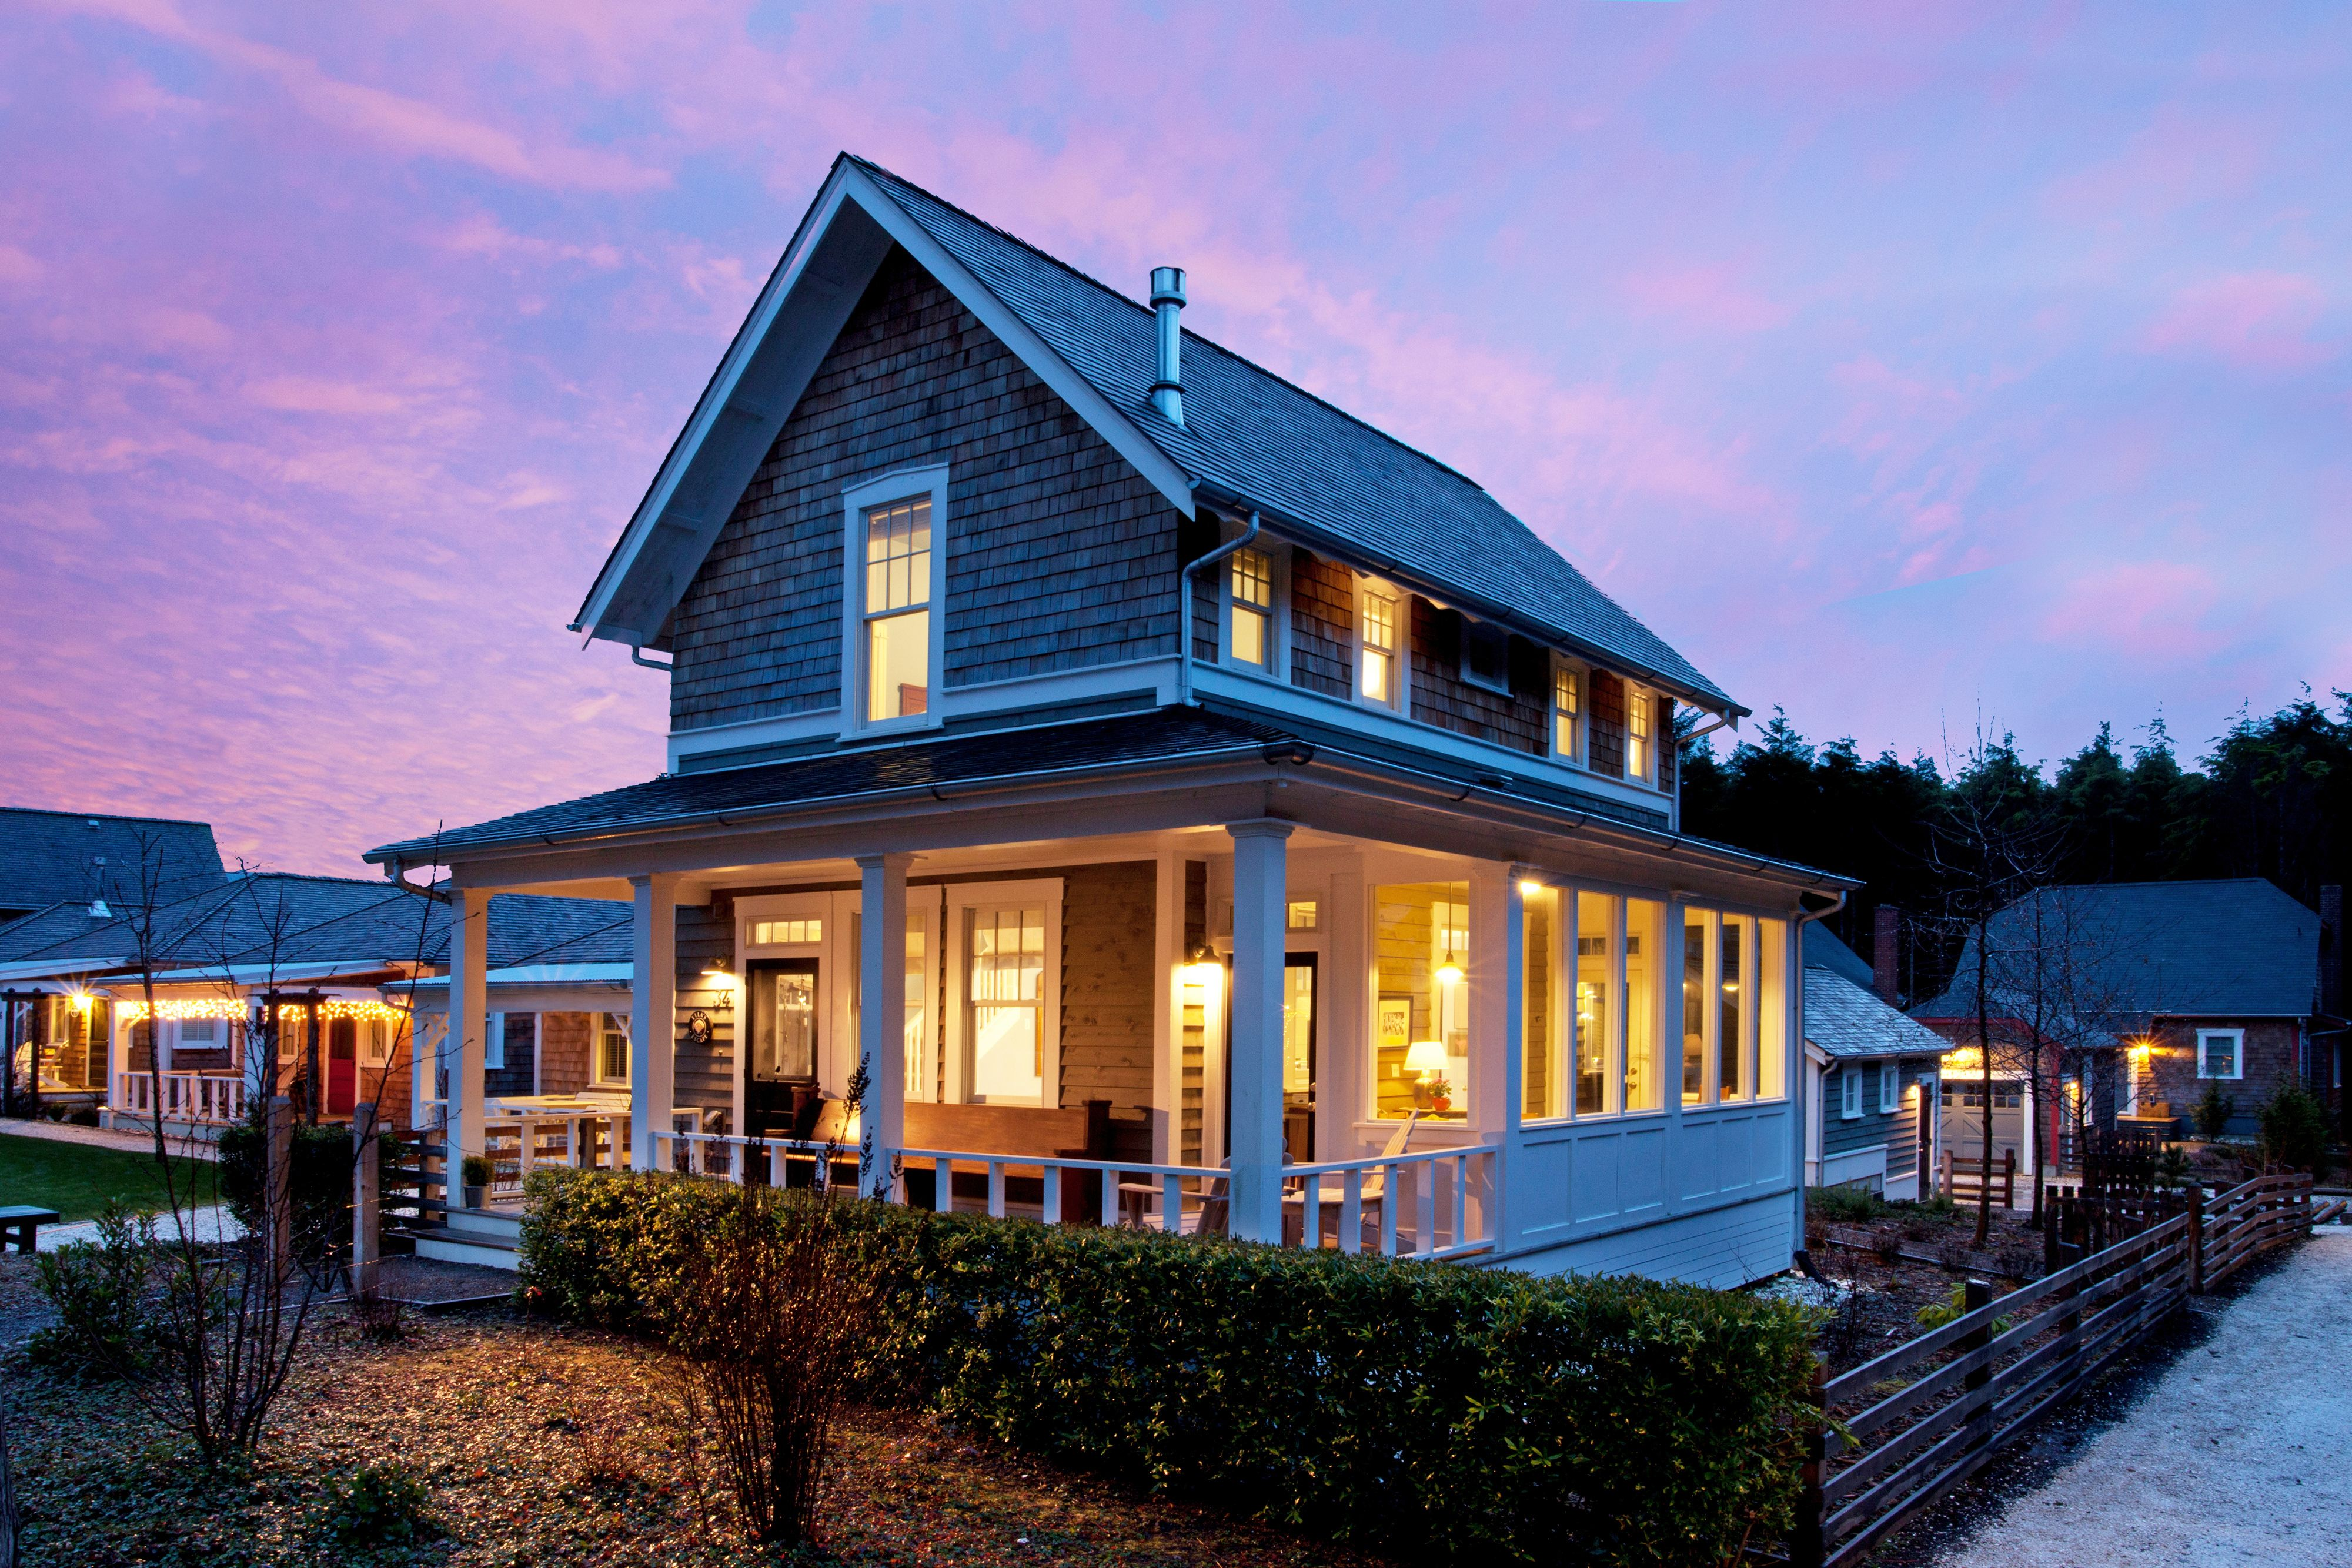 Seabrook A New Urban Resort Town Located On The Washington Coast Has Launched